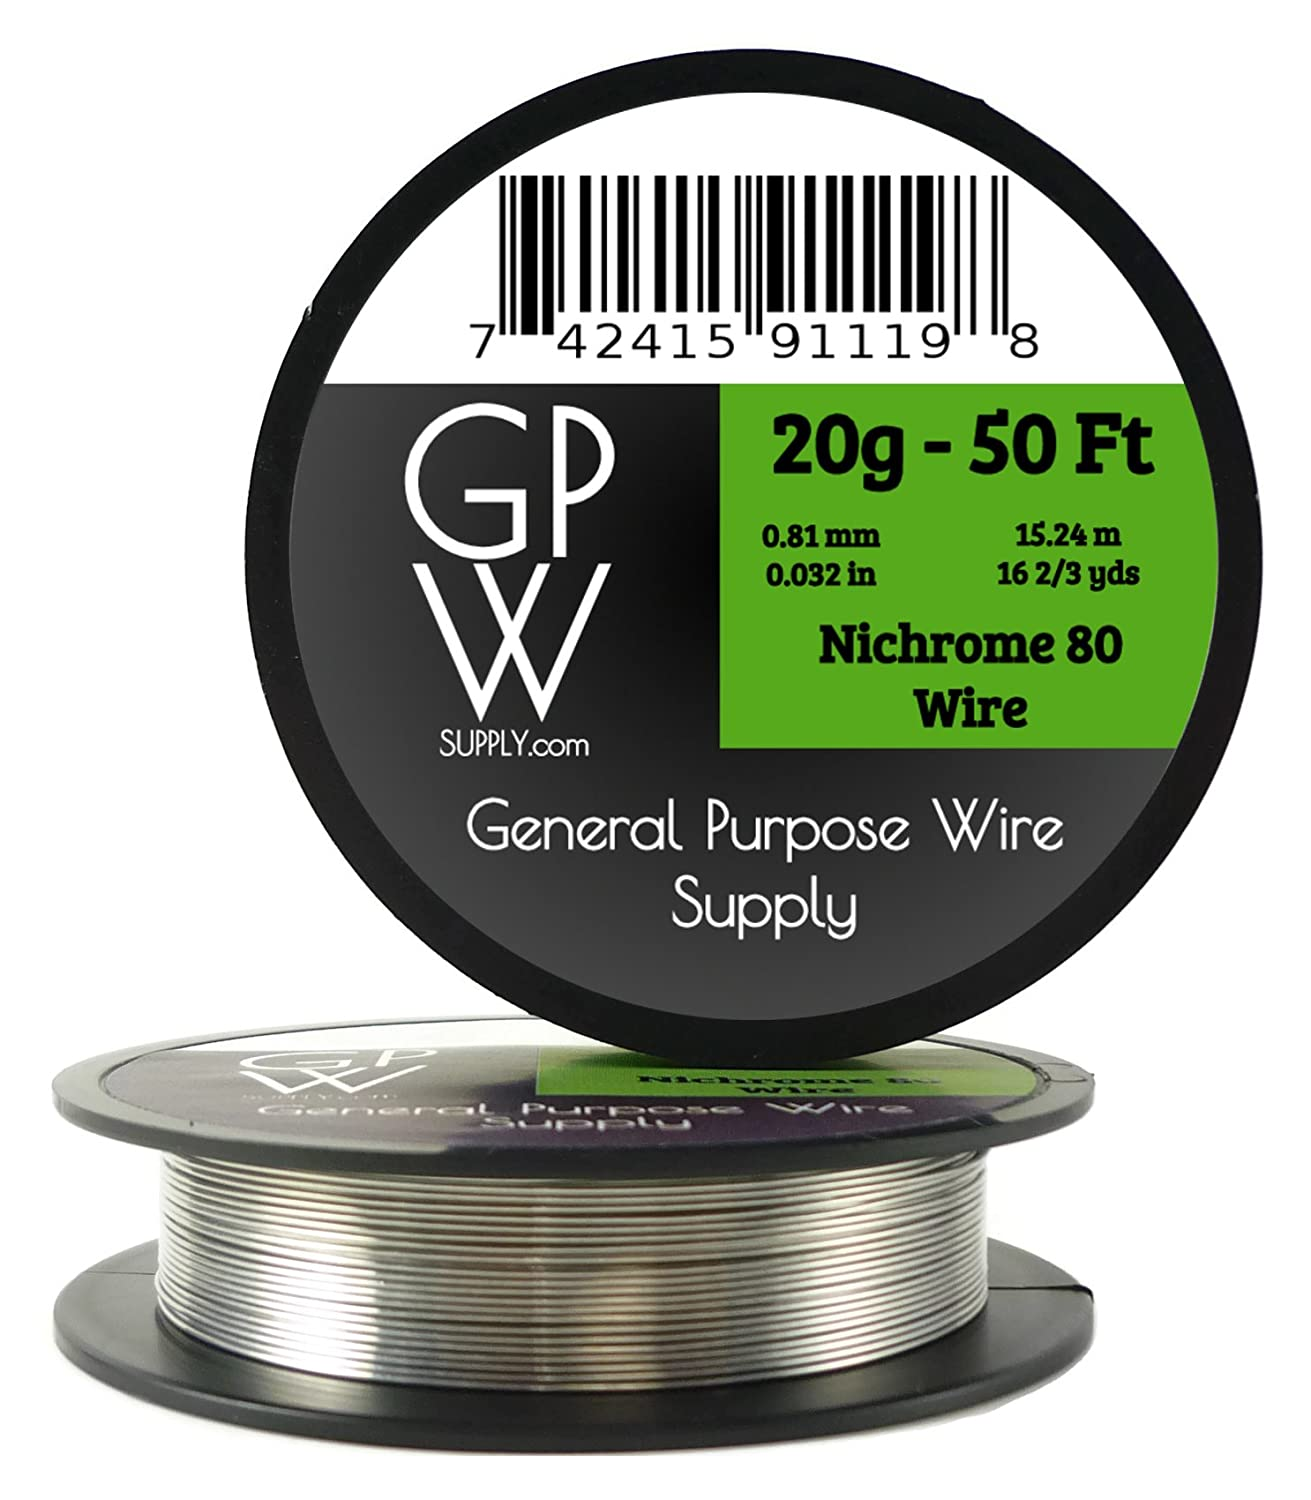 GPW Supply - Nichrome 80 20g 50 ft Electronic Resistance Wire ...